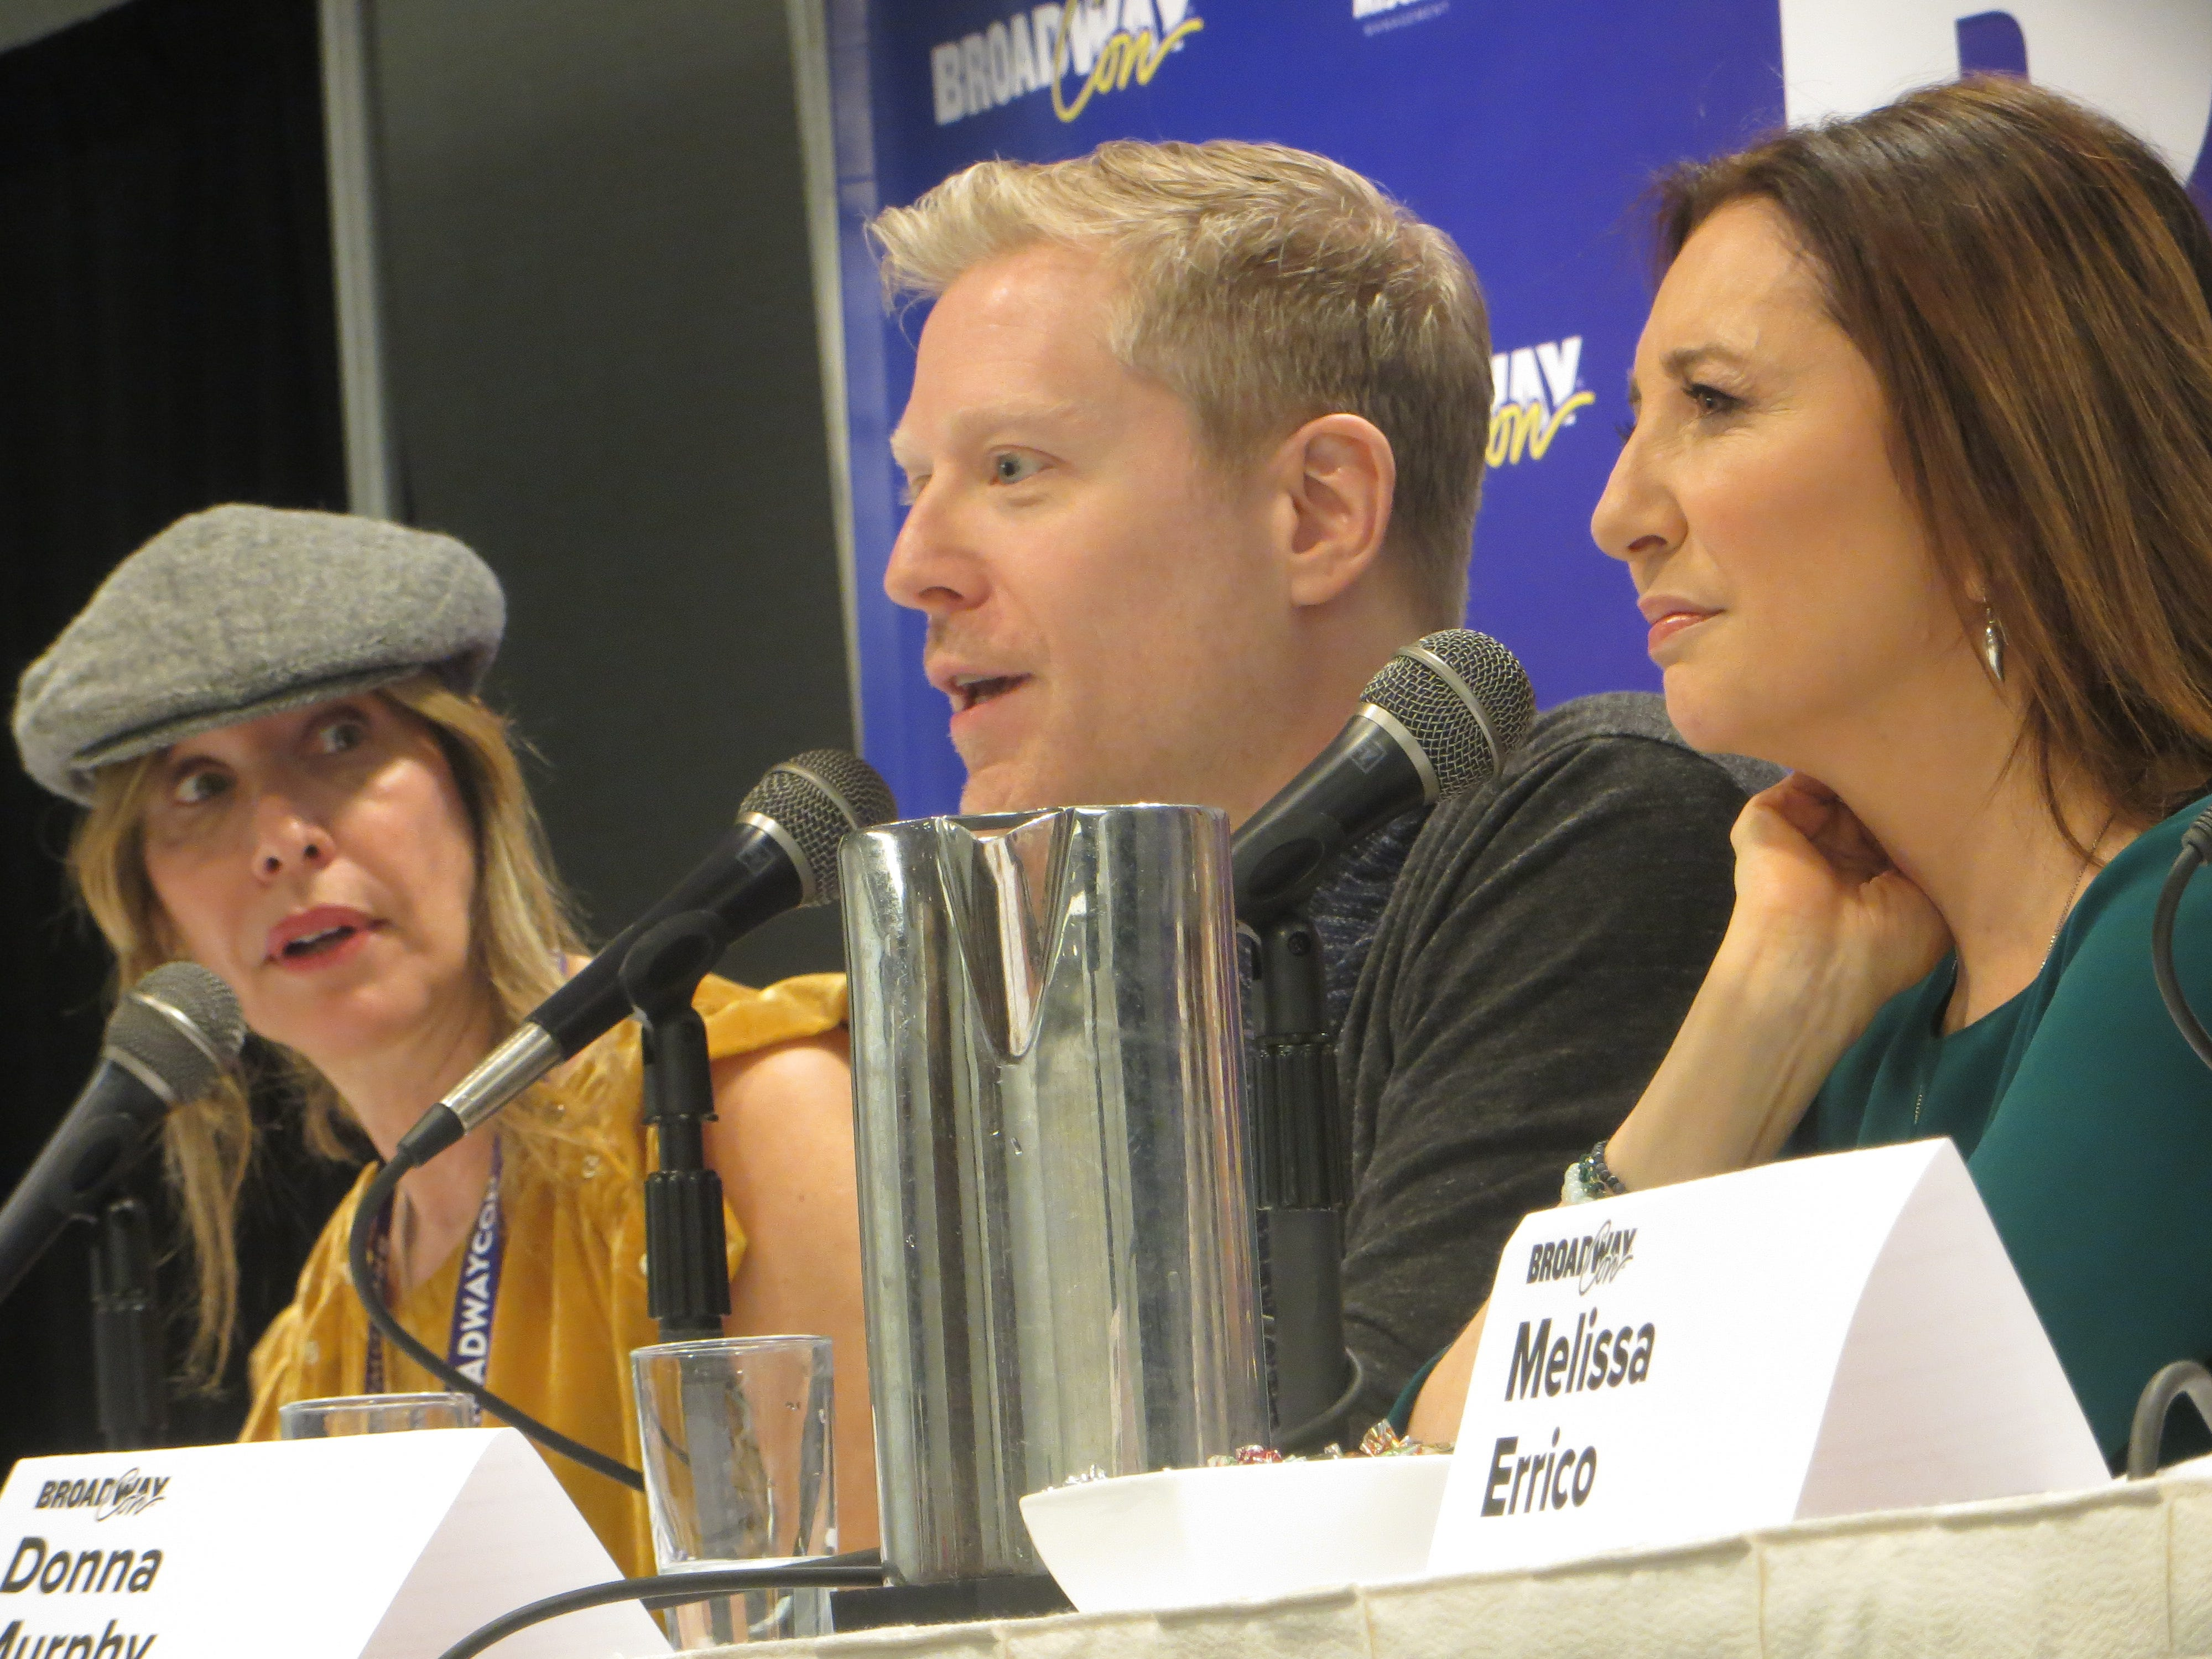 Ilana Levine, Anthony Rapp and Donna Murphy take part in a panel at BroadwayCon 2019, held Jan. 11 to 13, 2019, at the New York Hilton Midtown in Manhattan.